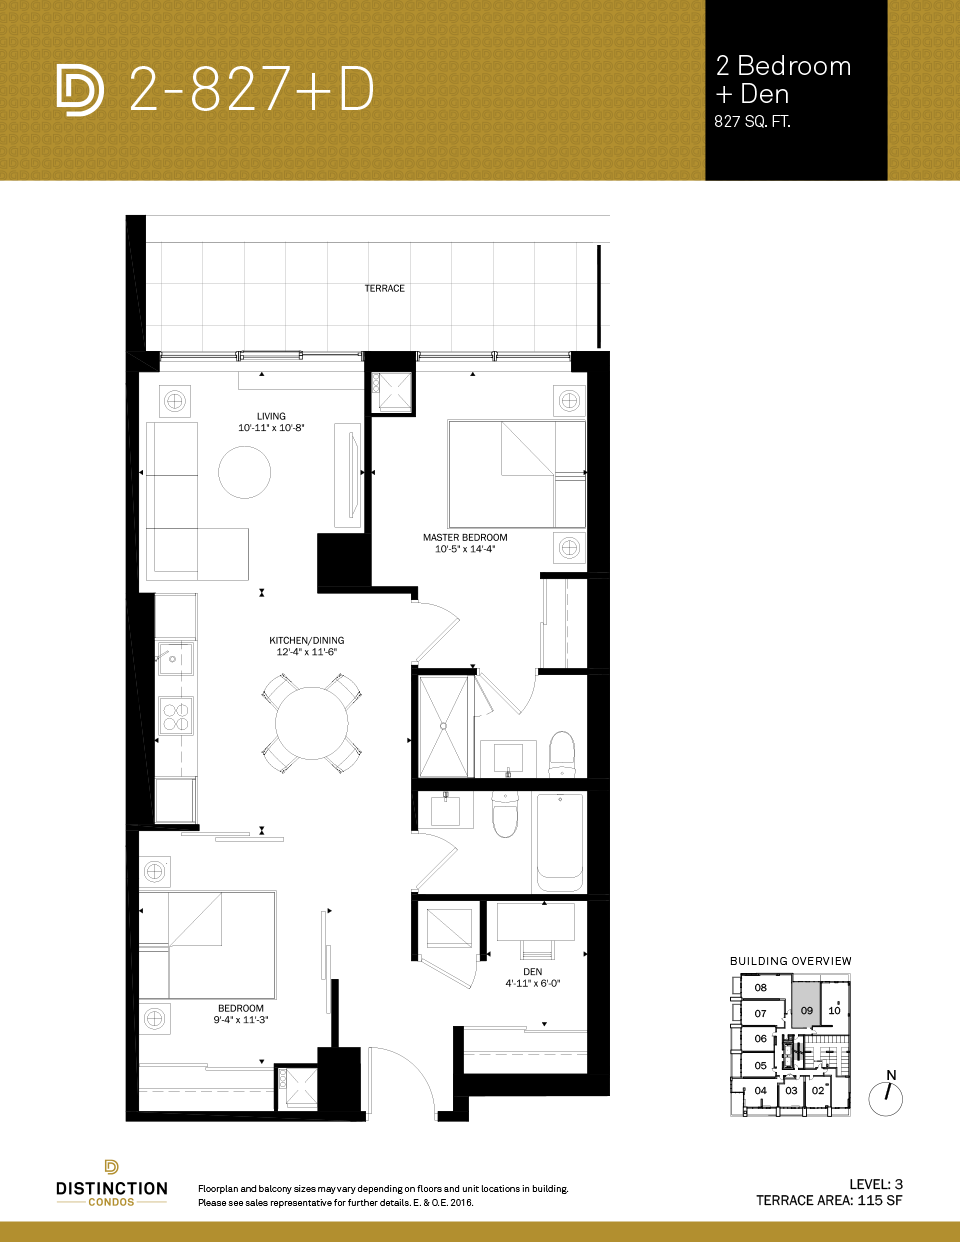 distinction condos floorplan 2-827d